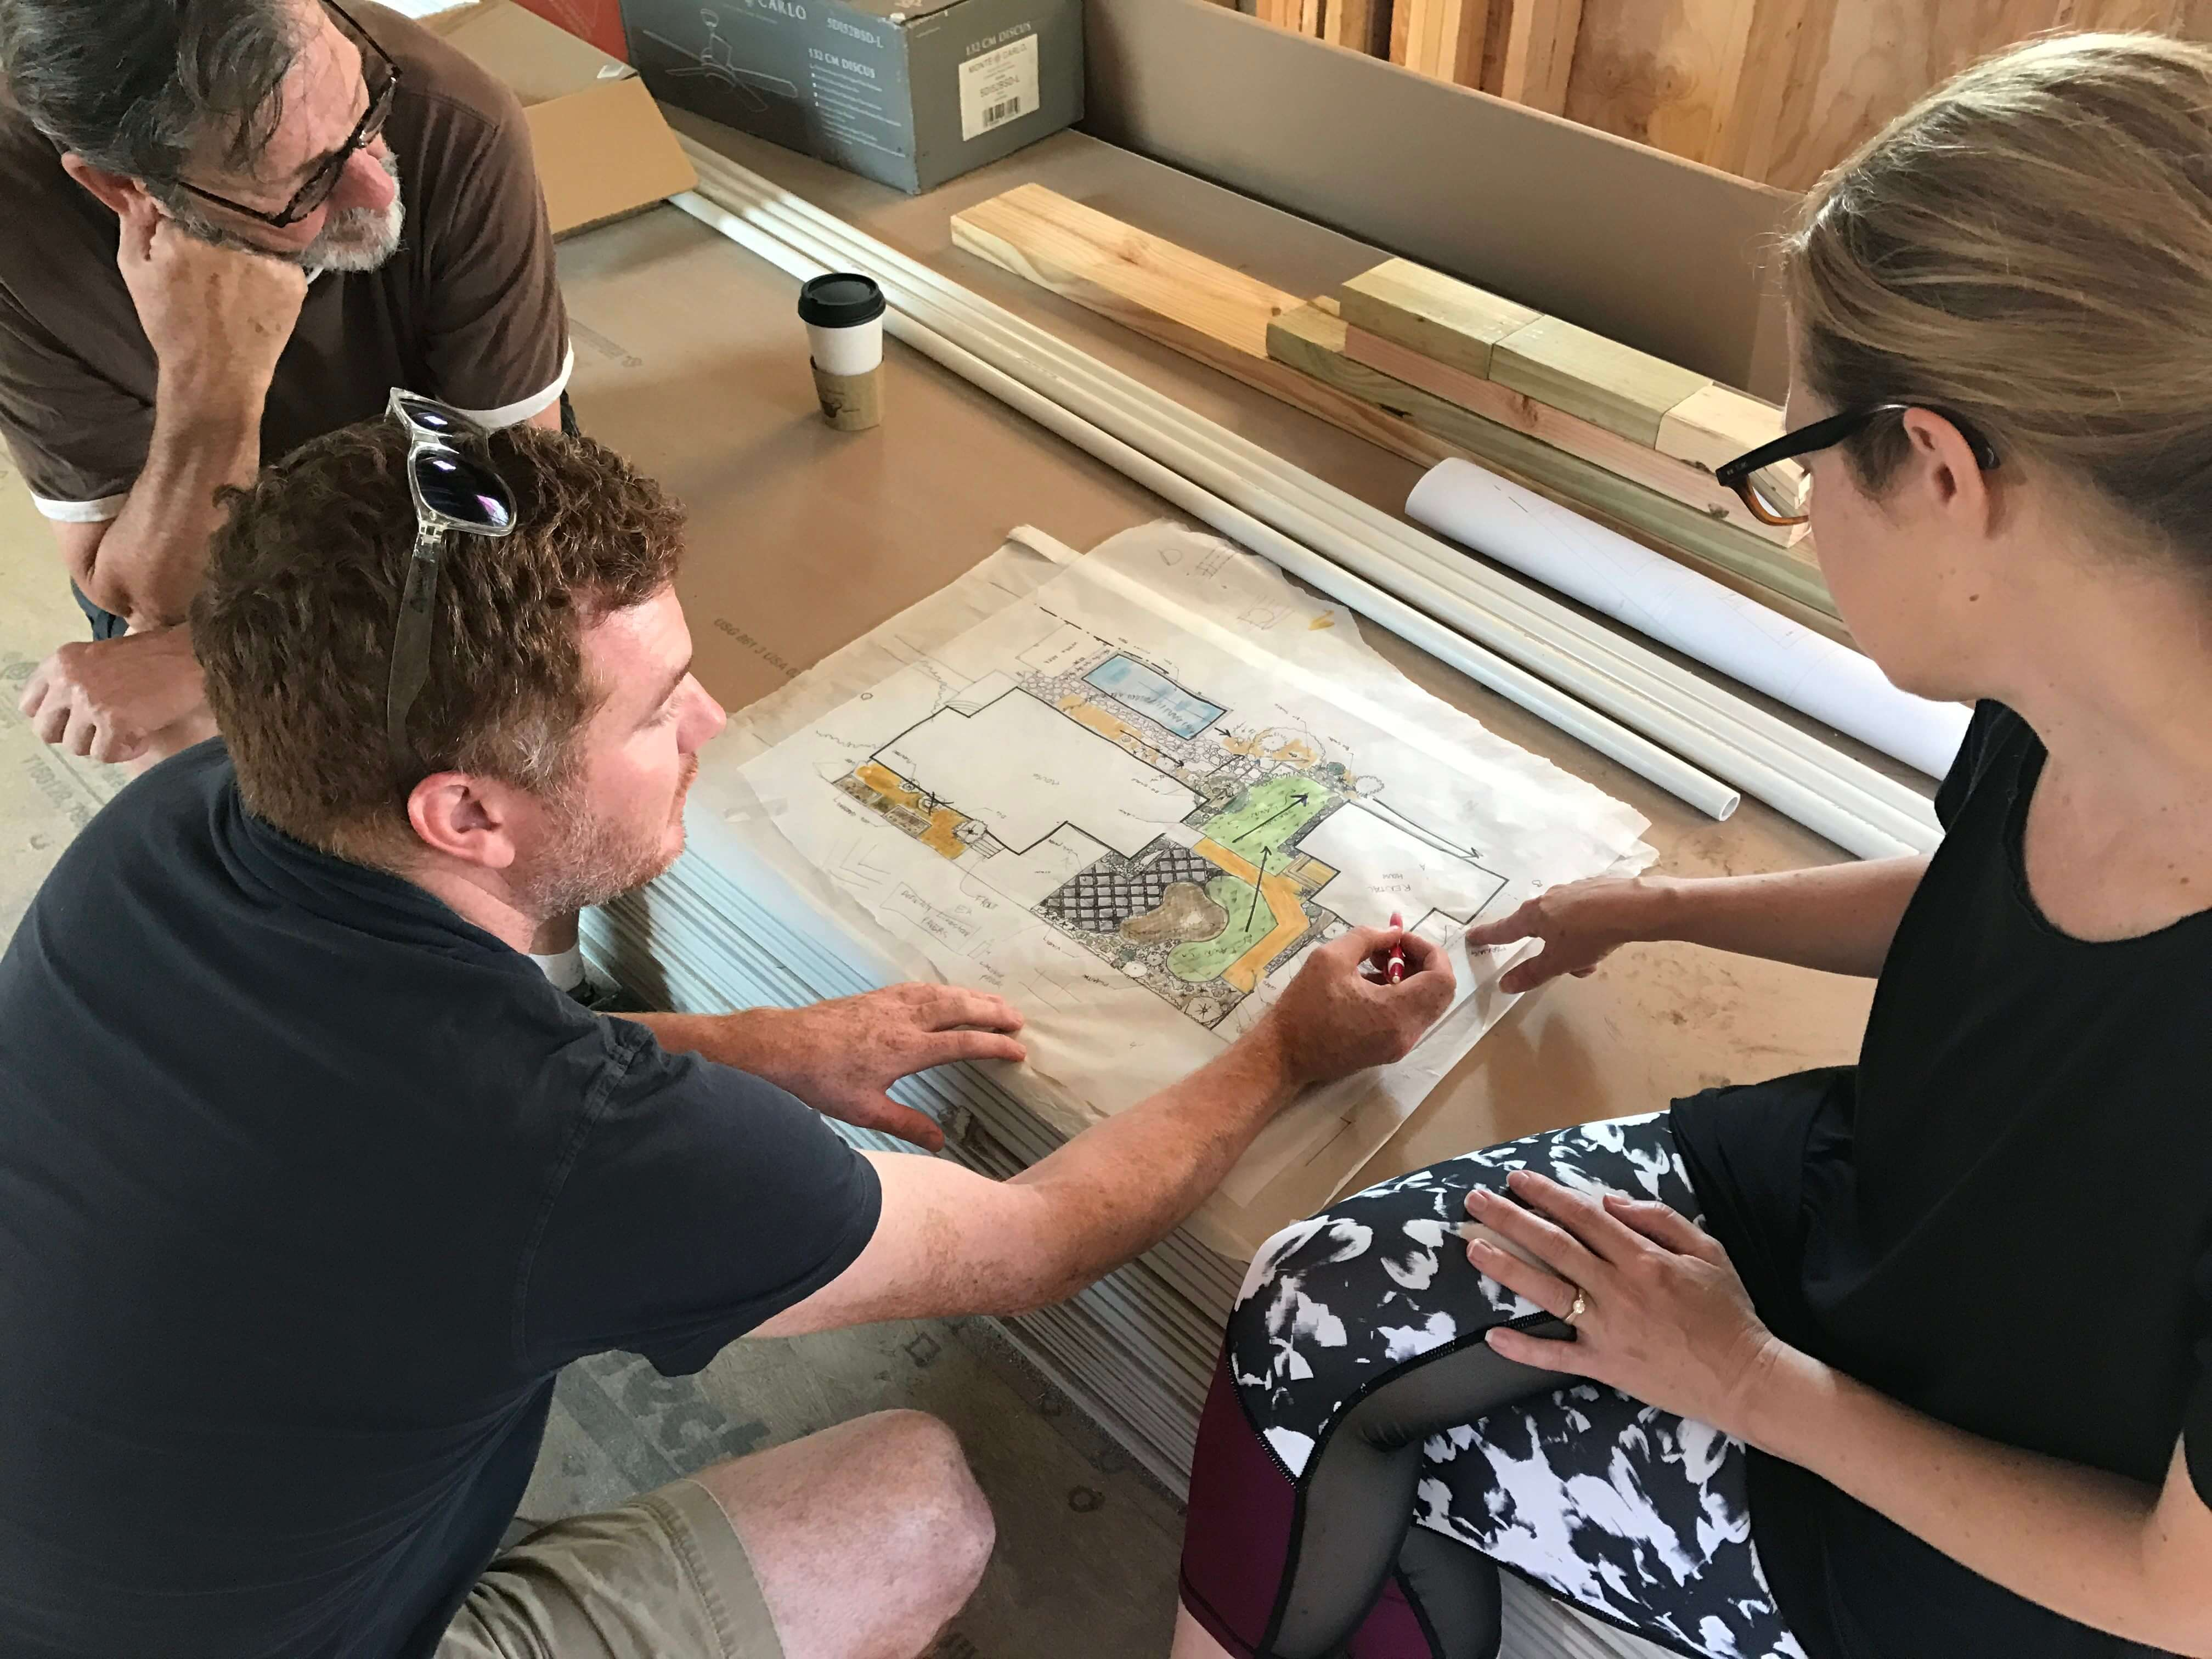 Adam Atkins and Christina Moon working on a landscape Design